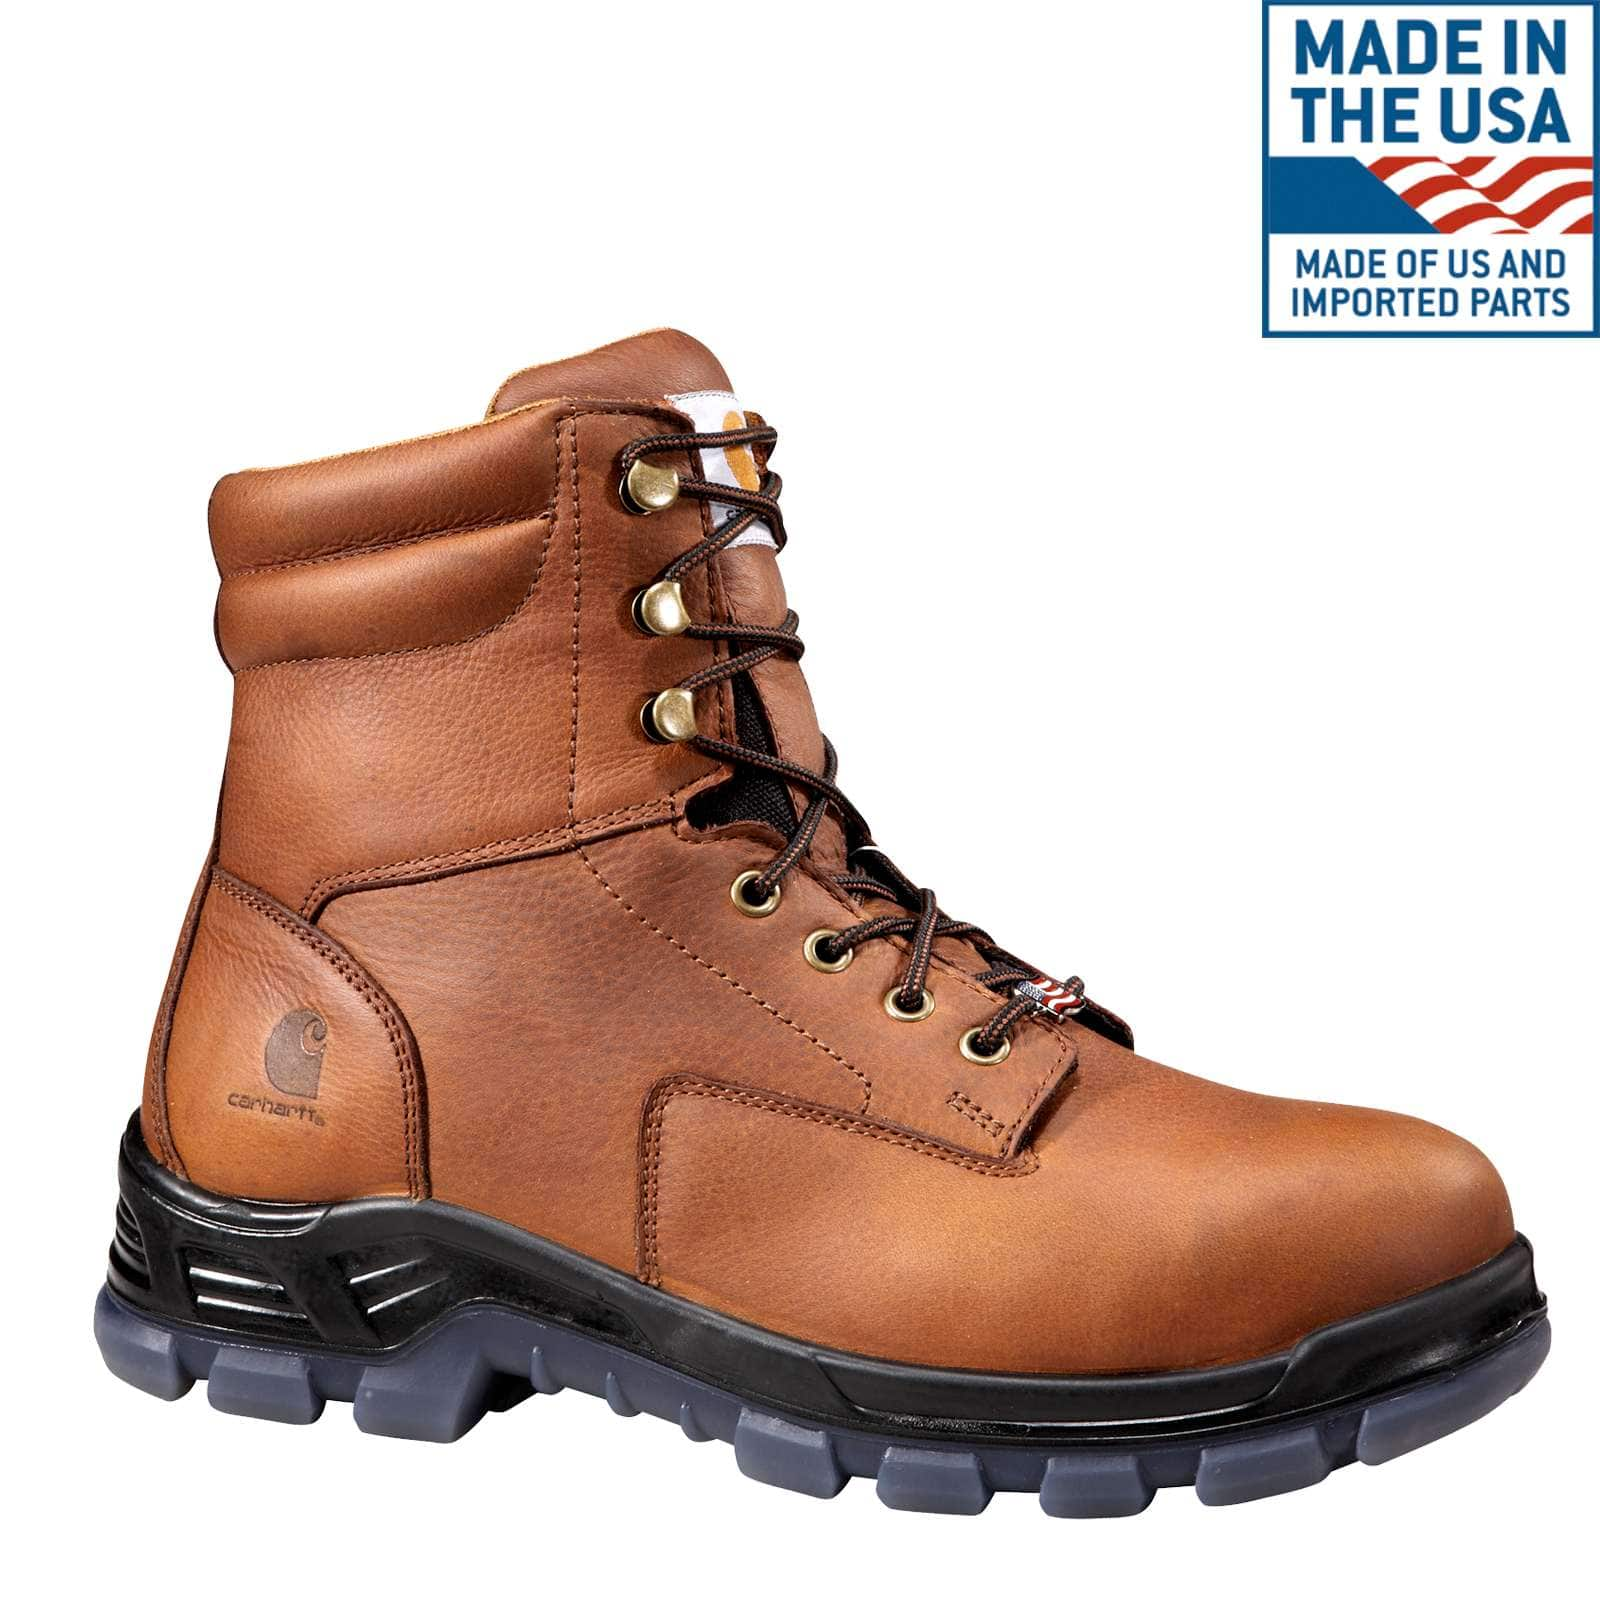 Carhartt's Composite Toe Work Boot (Work boots made in the USA, American-made.)